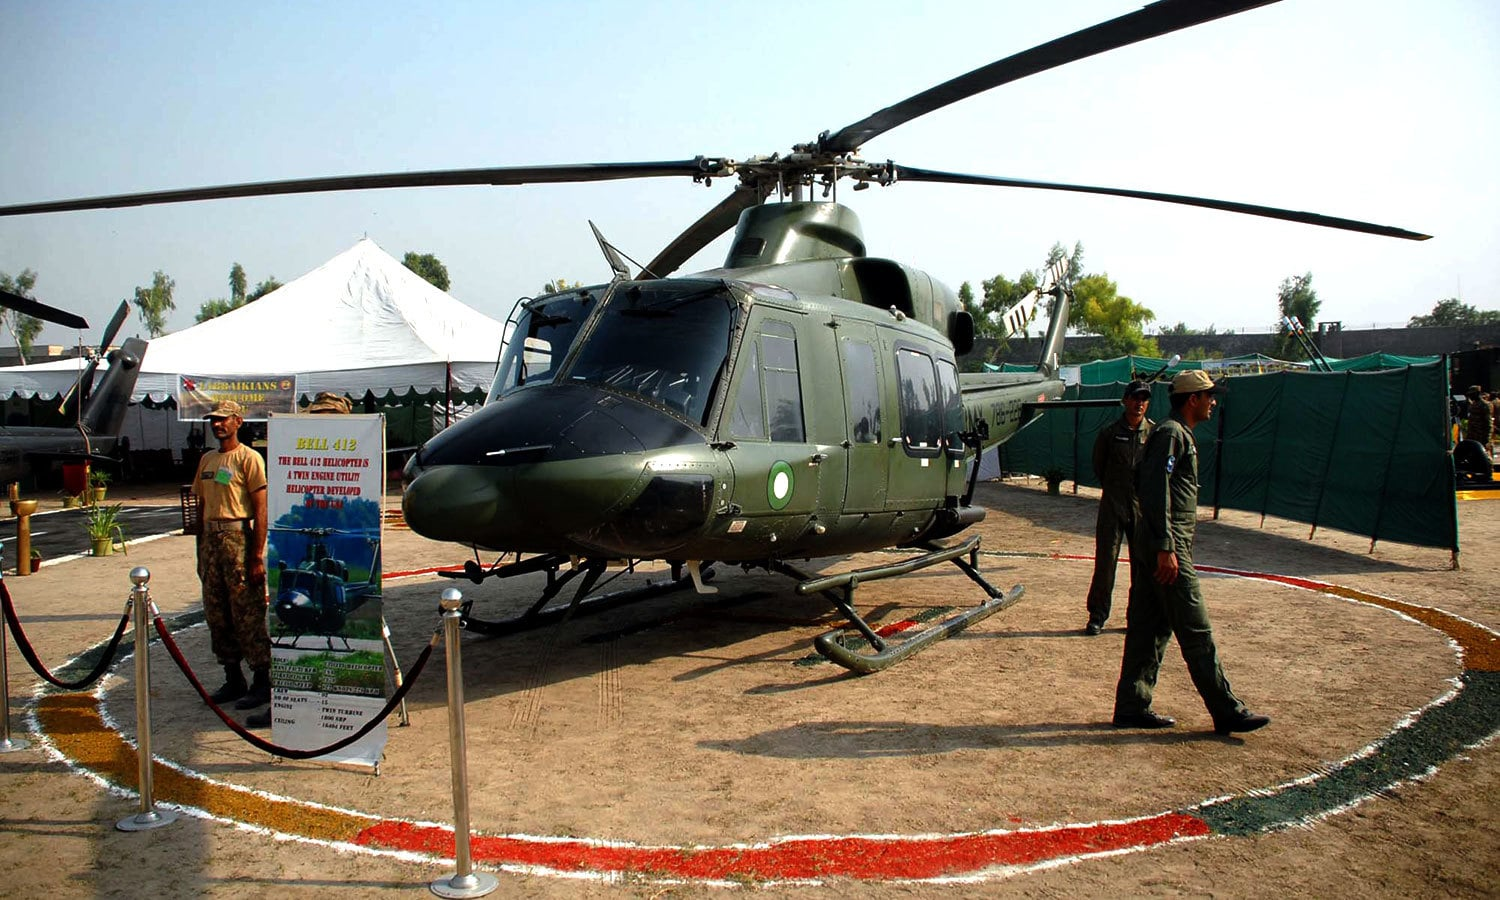 An Army Aviation helicopter being displayed. — APP